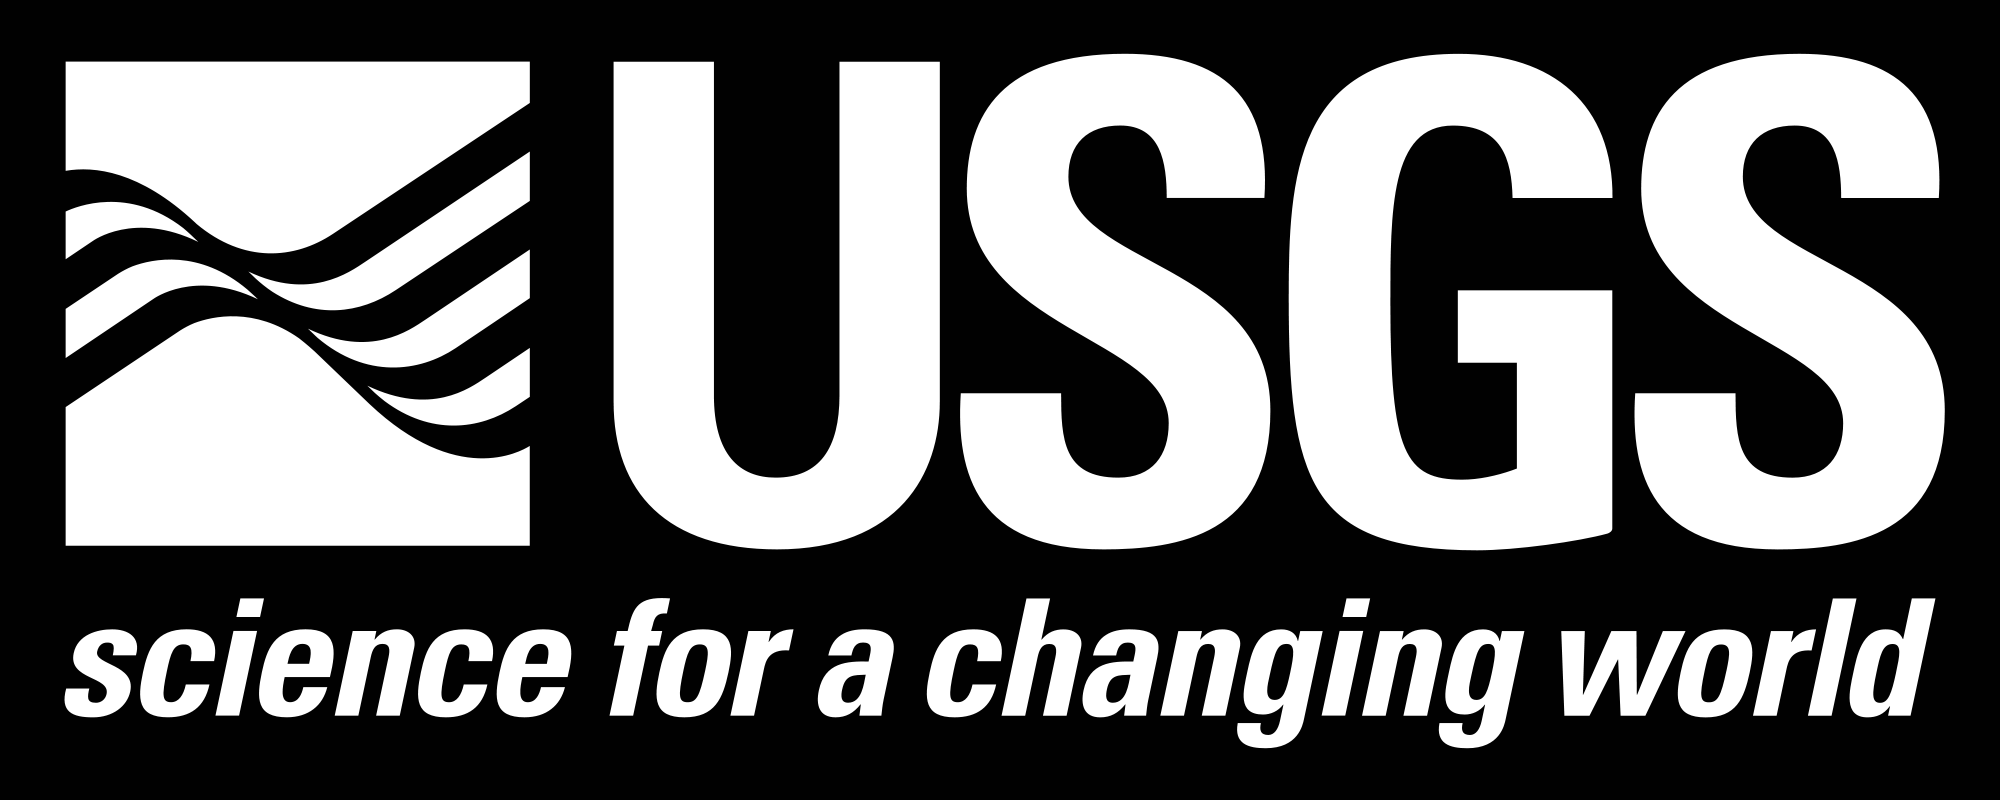 USGS logo - link to USGS website opens in new window